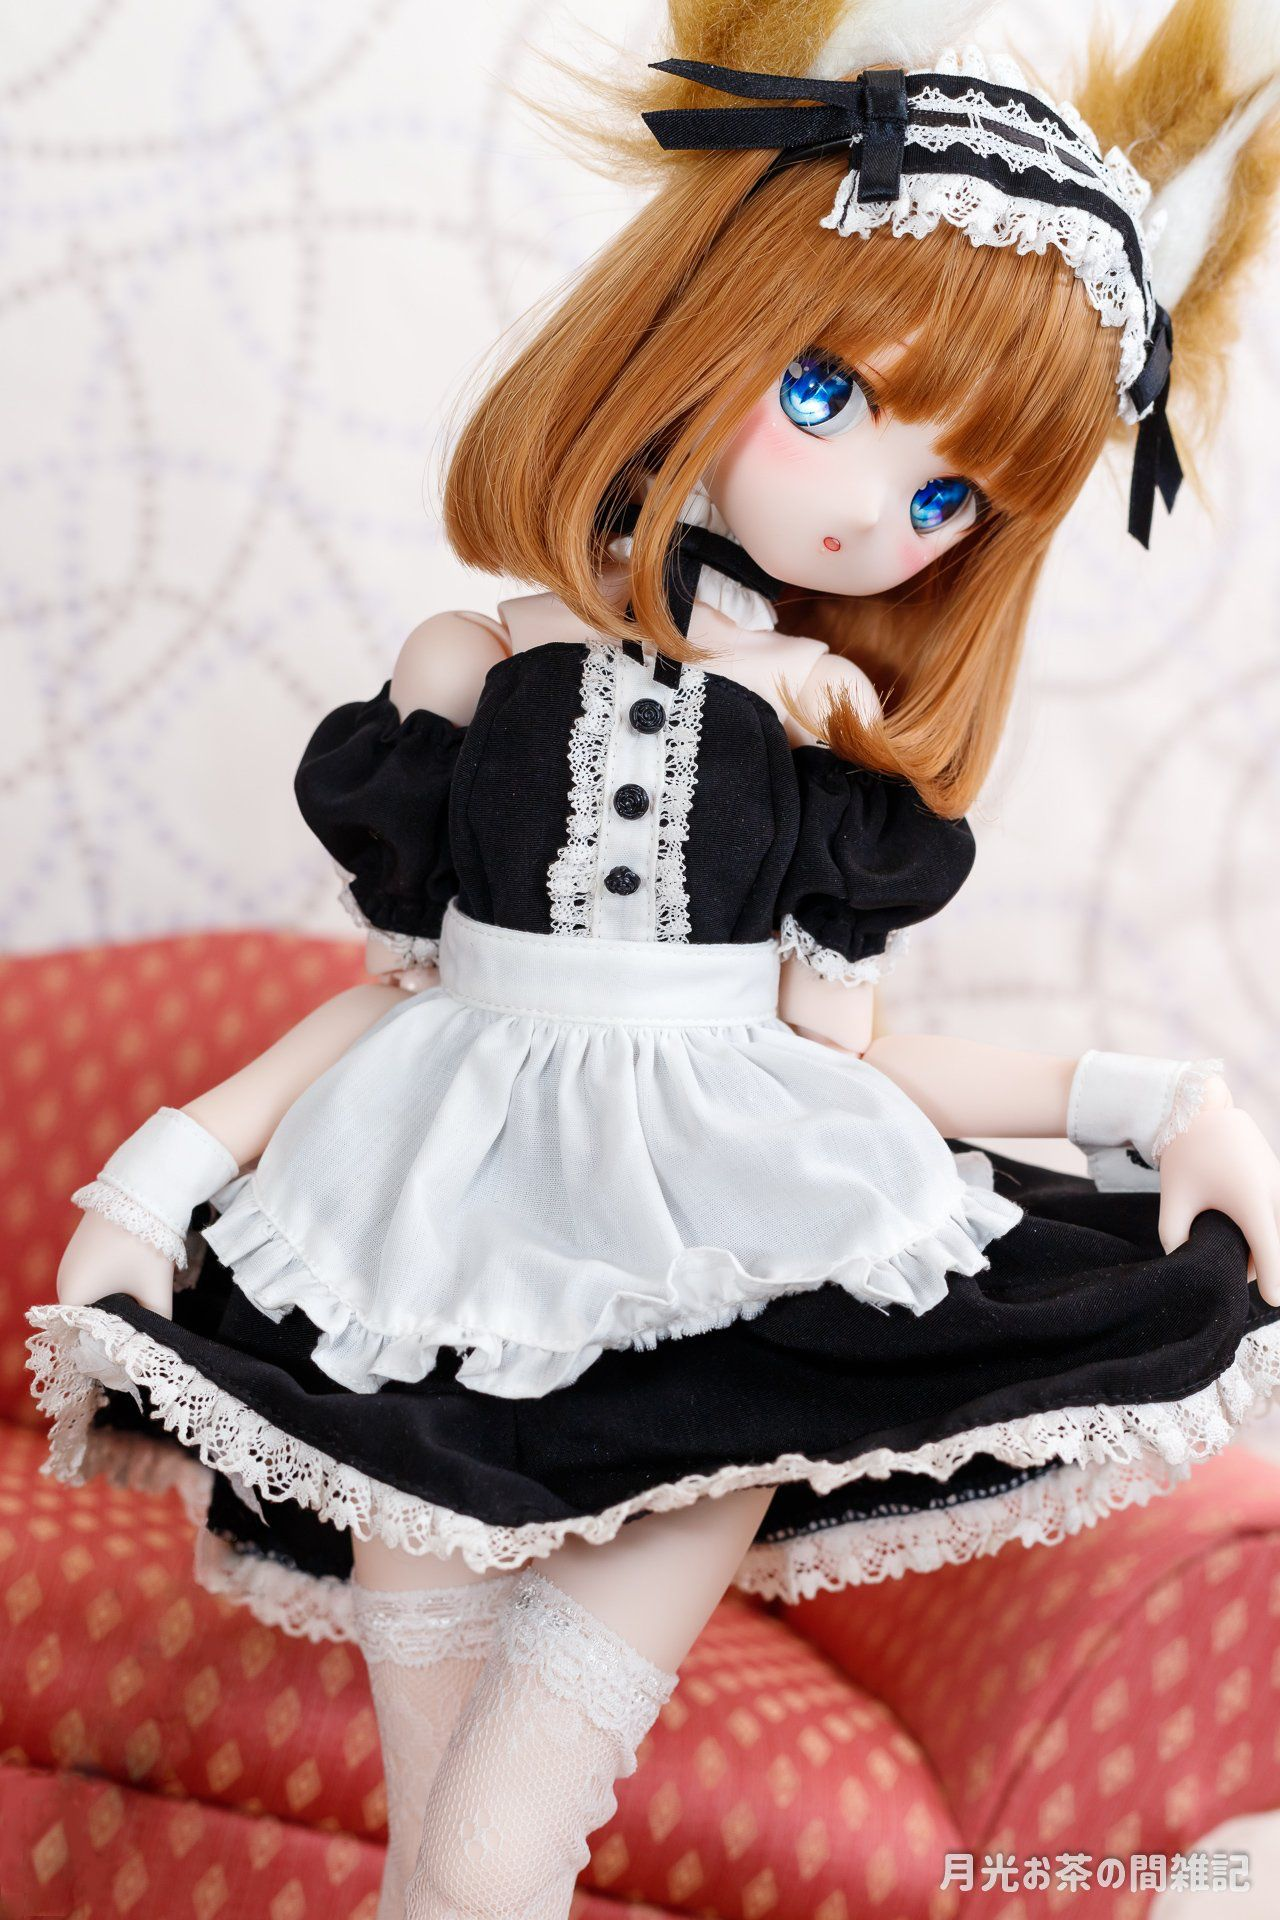 Anime, Doll, Kawaii, Smart Doll, Dollfie (With images